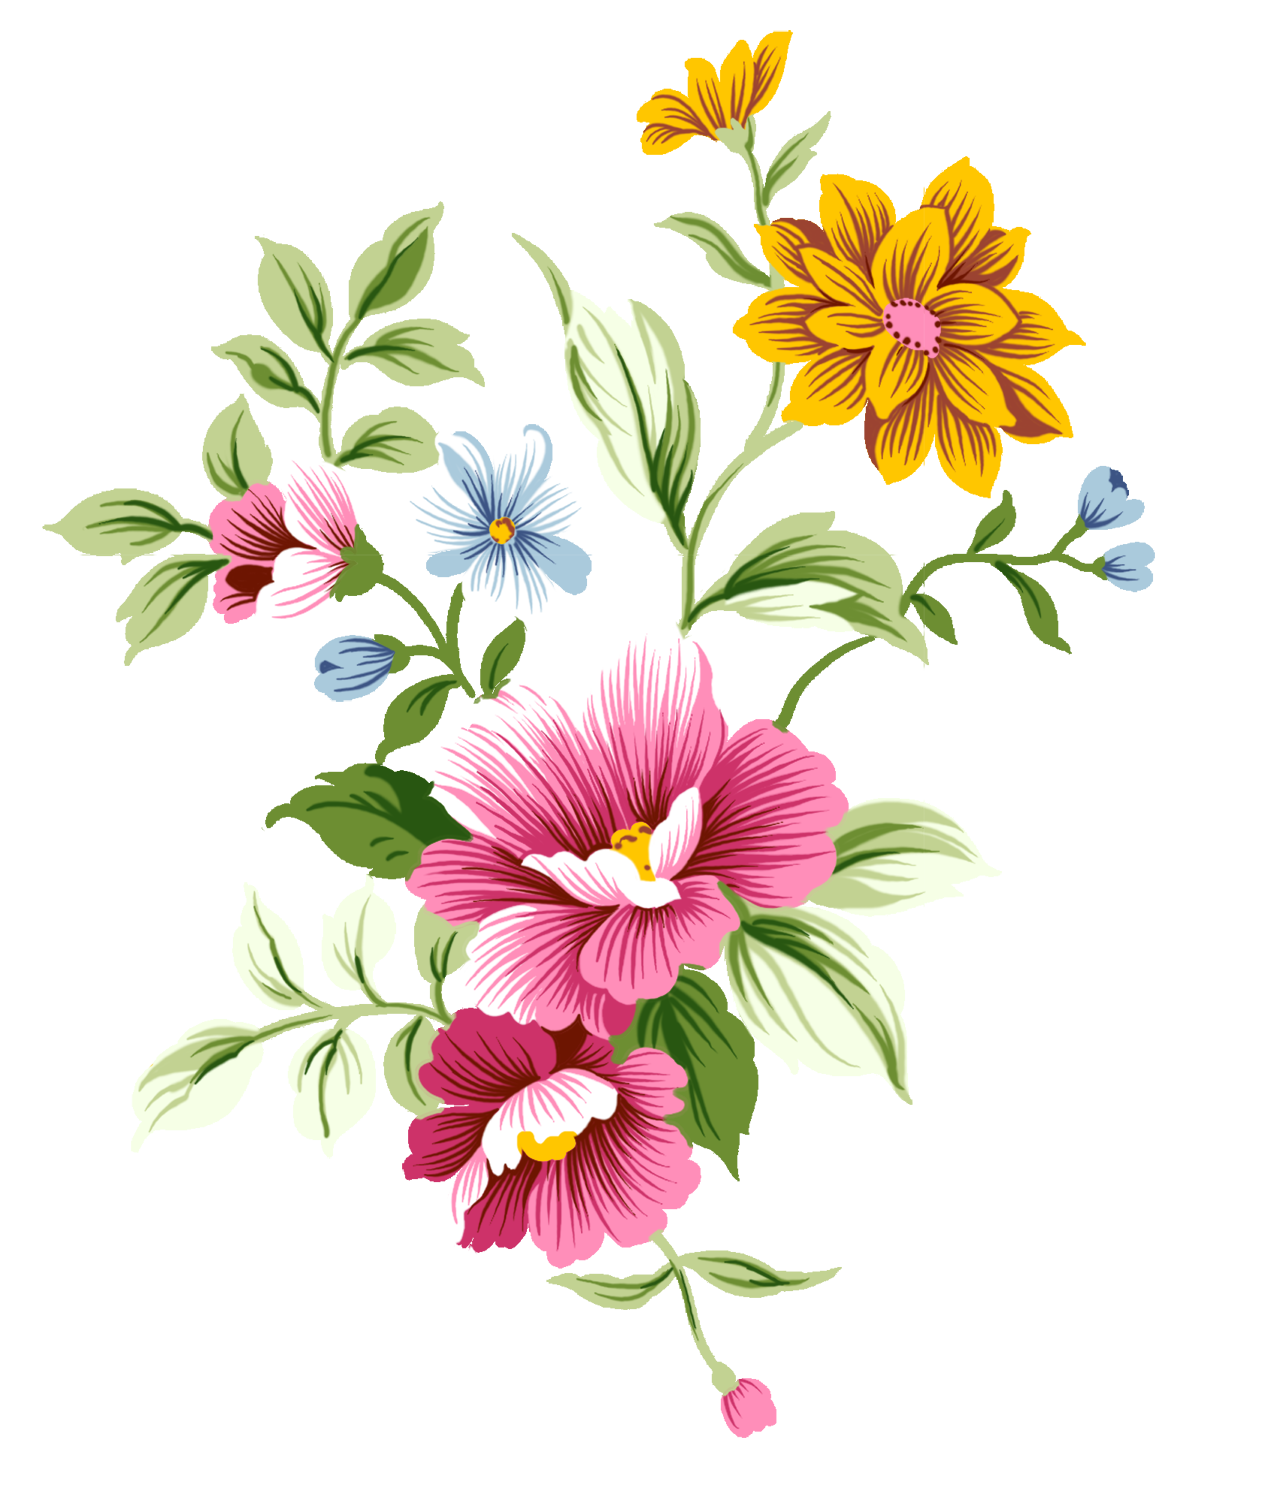 145dc 0120060073 Png 1271 1500 Pretty Flower Art Flower Png Images Flower Clipart